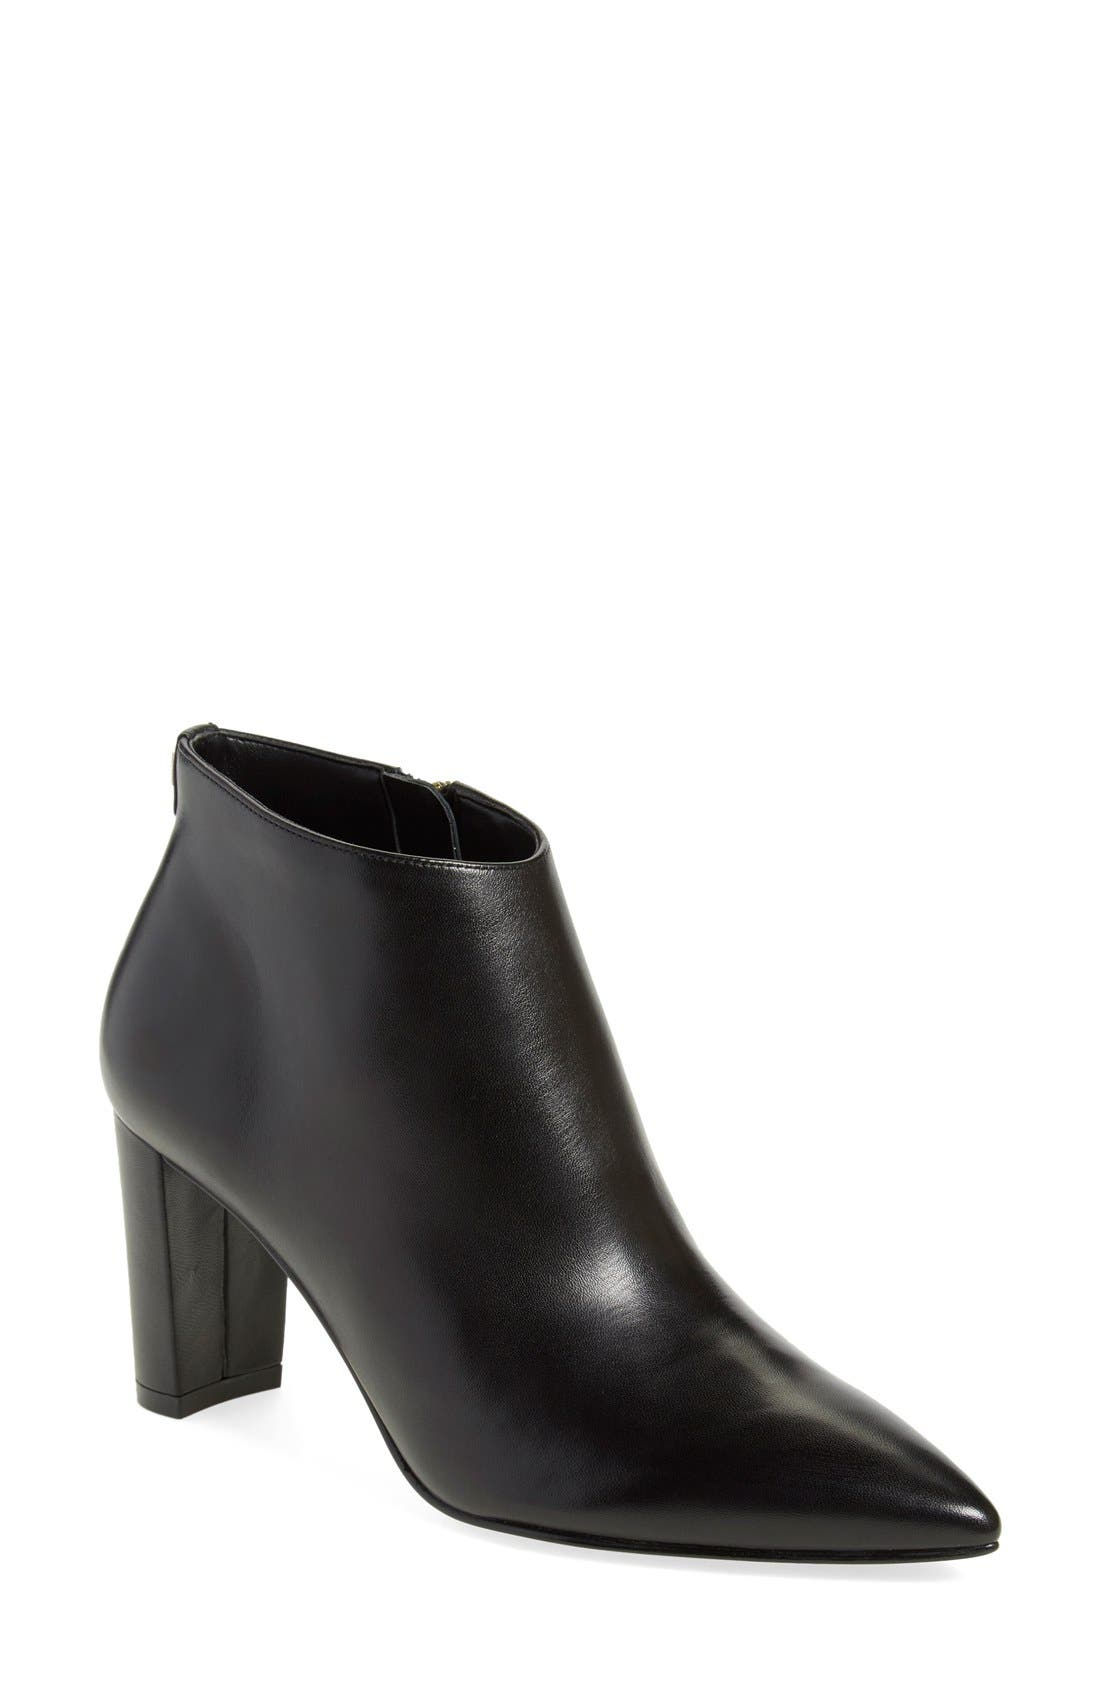 'Lettie' Pointy Toe Bootie,                         Main,                         color, Black Leather